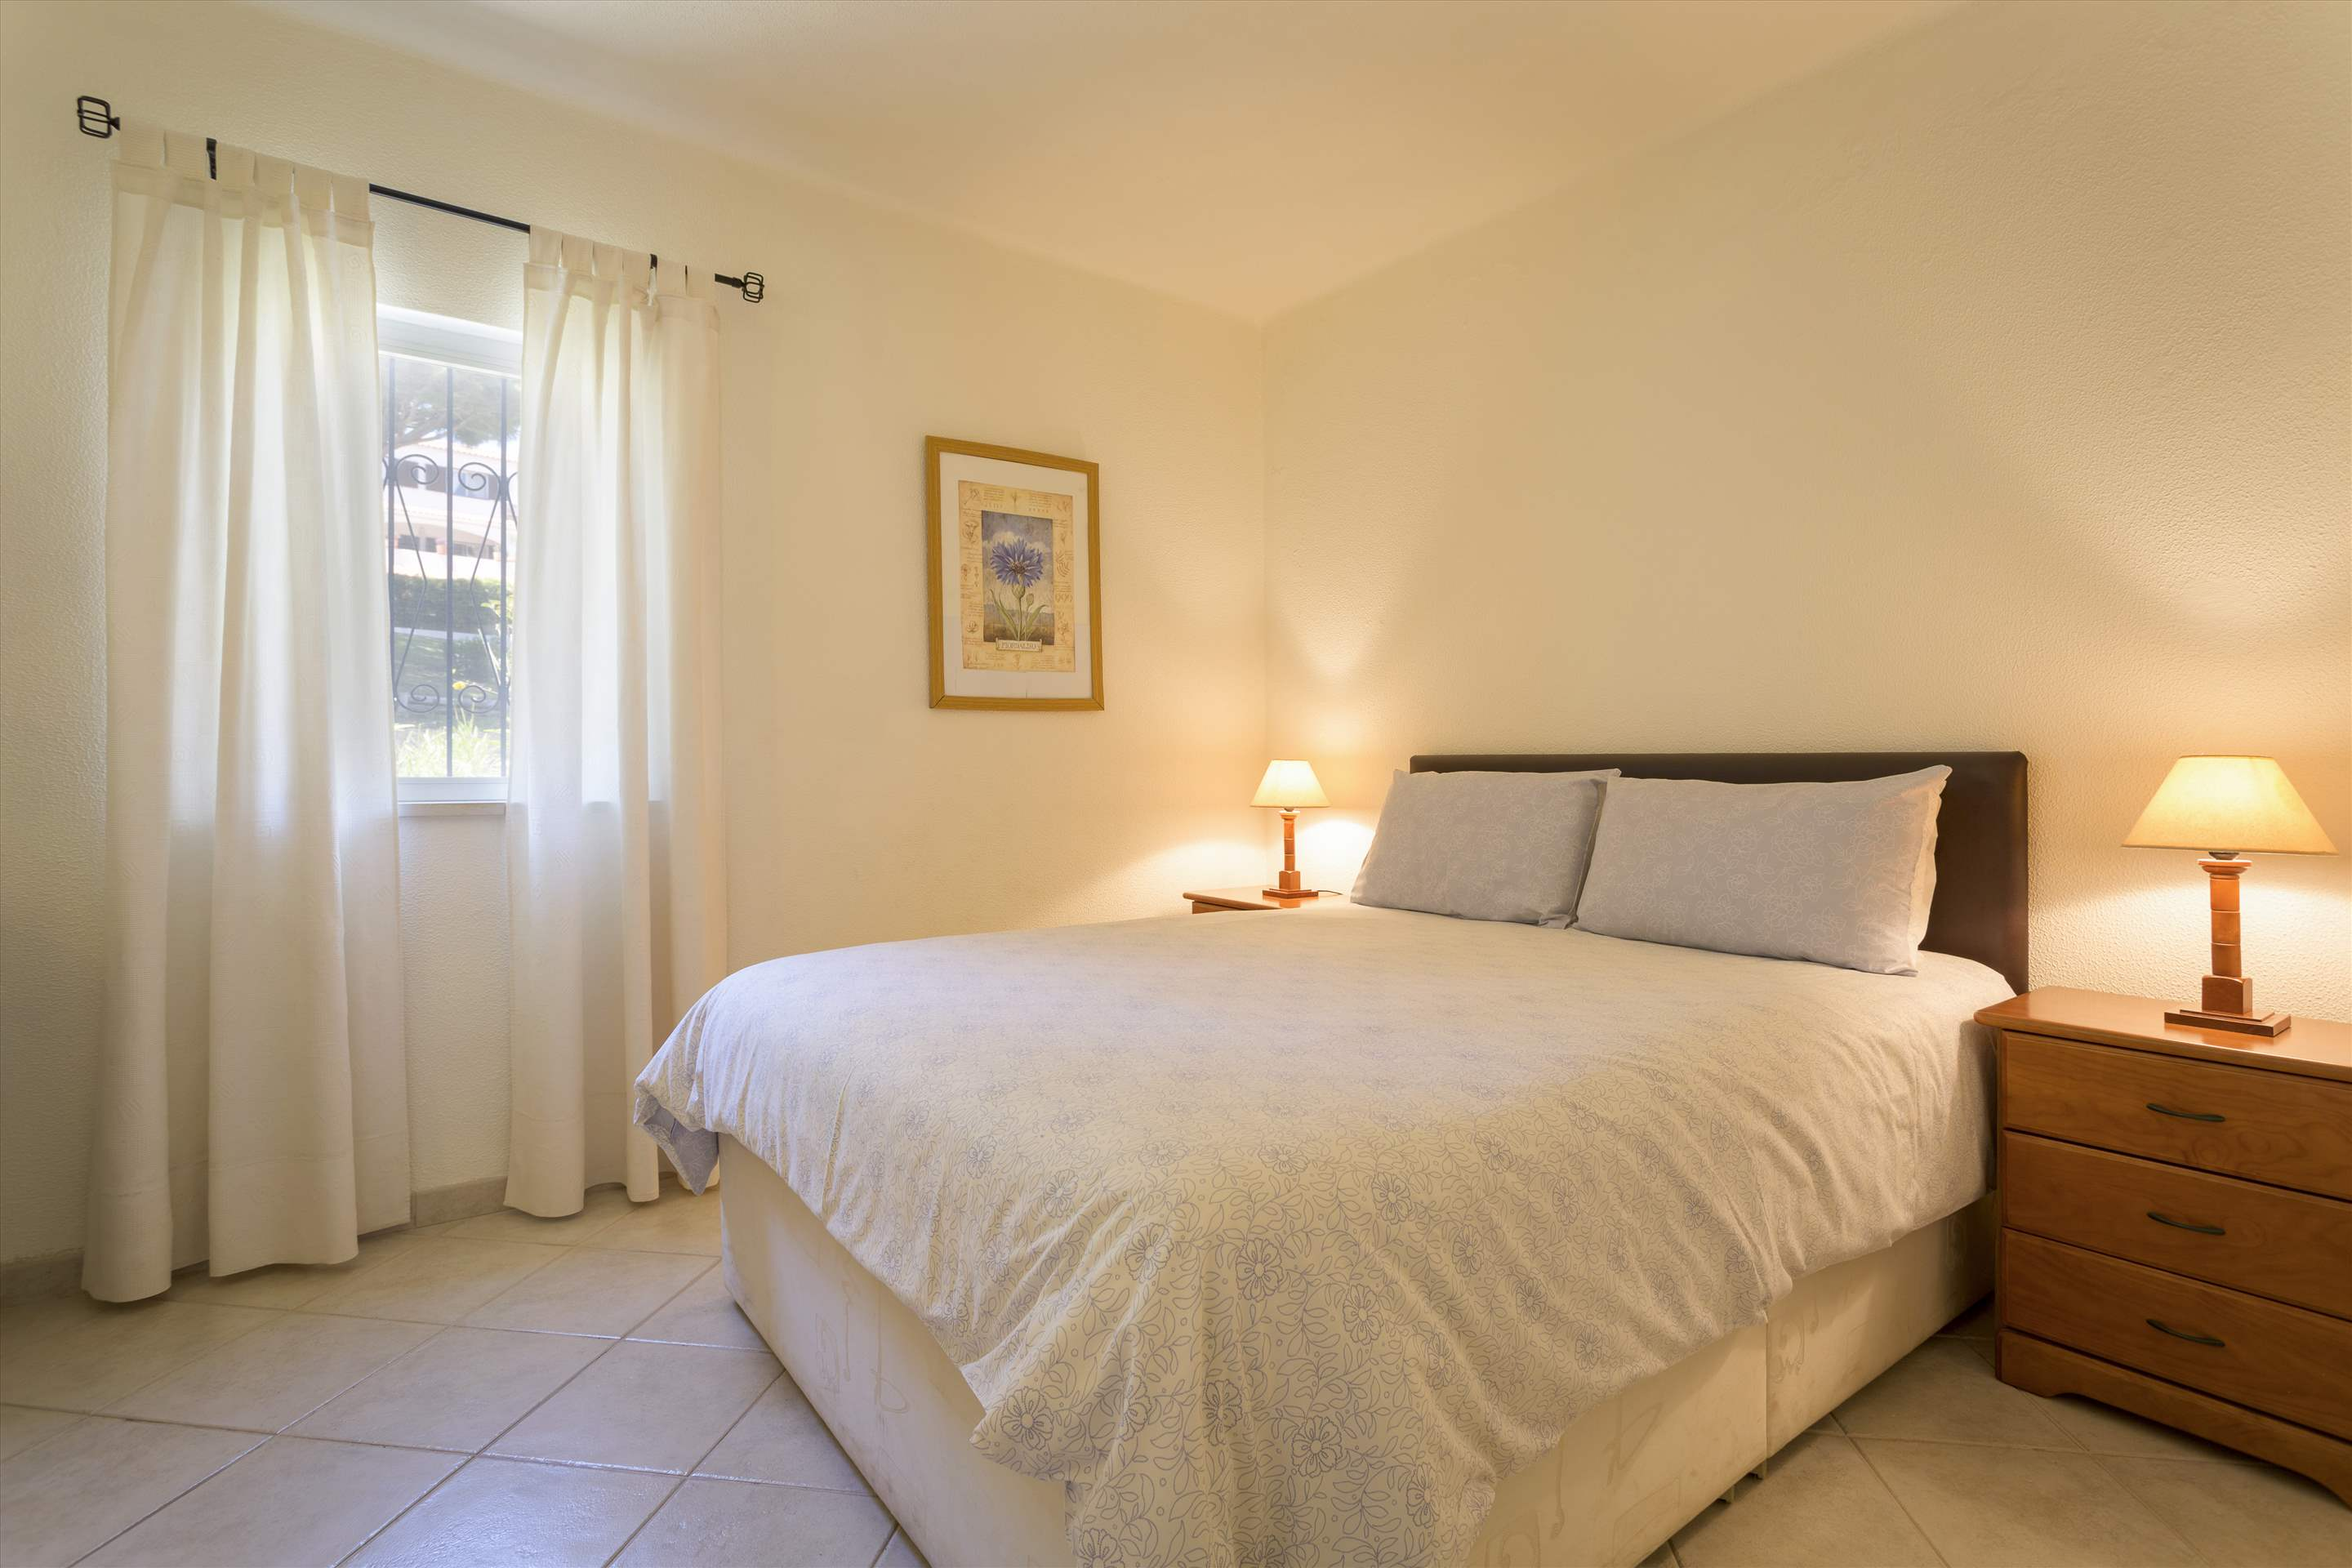 Villa Flamingo, 3 bedroom villa in Vale do Lobo, Algarve Photo #10